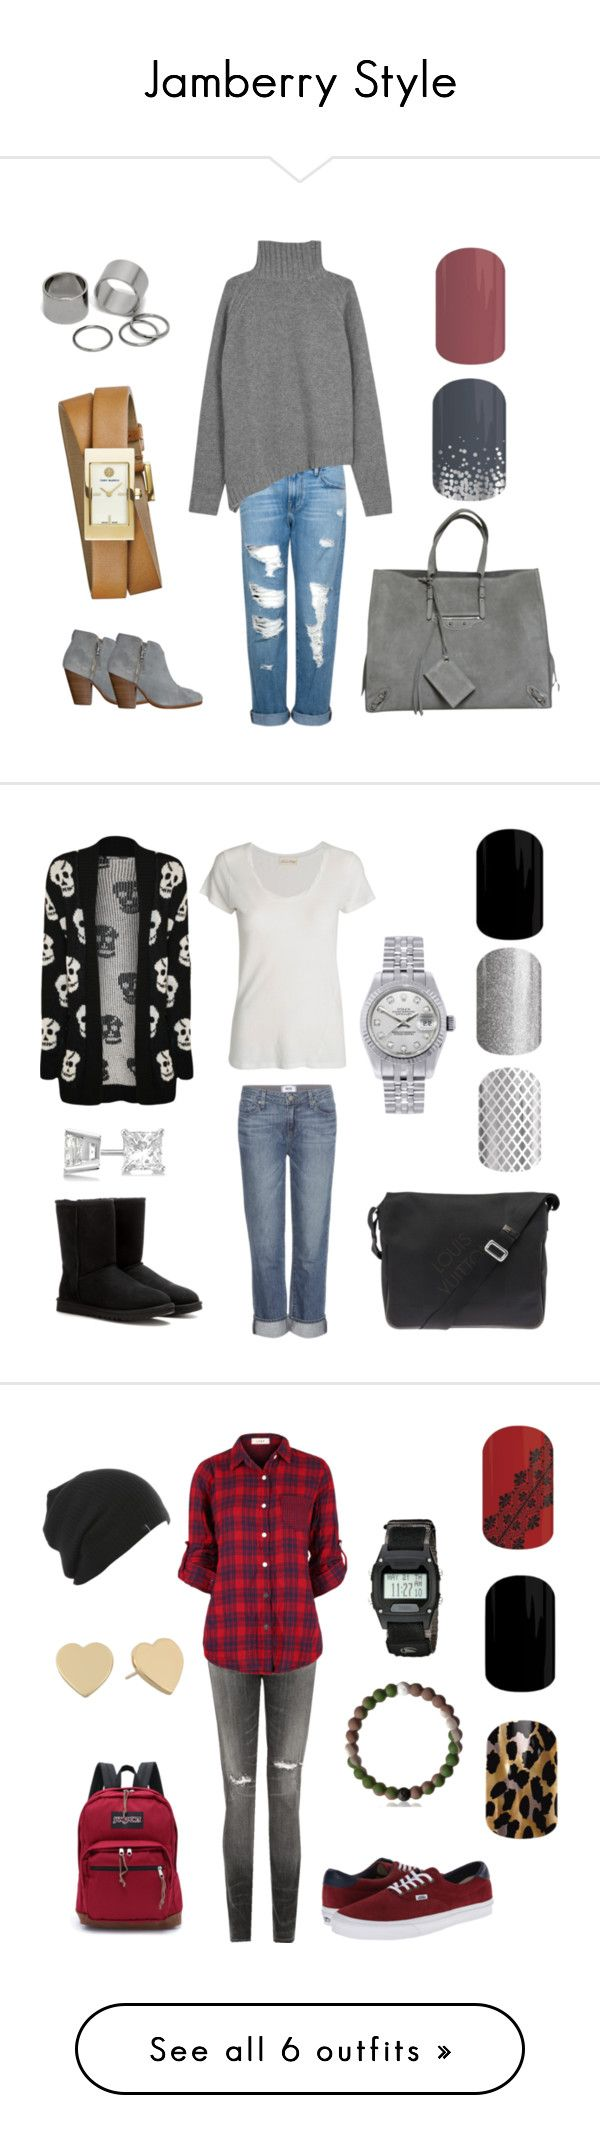 """Jamberry Style"" by kellie-guravich-medivitz on Polyvore"